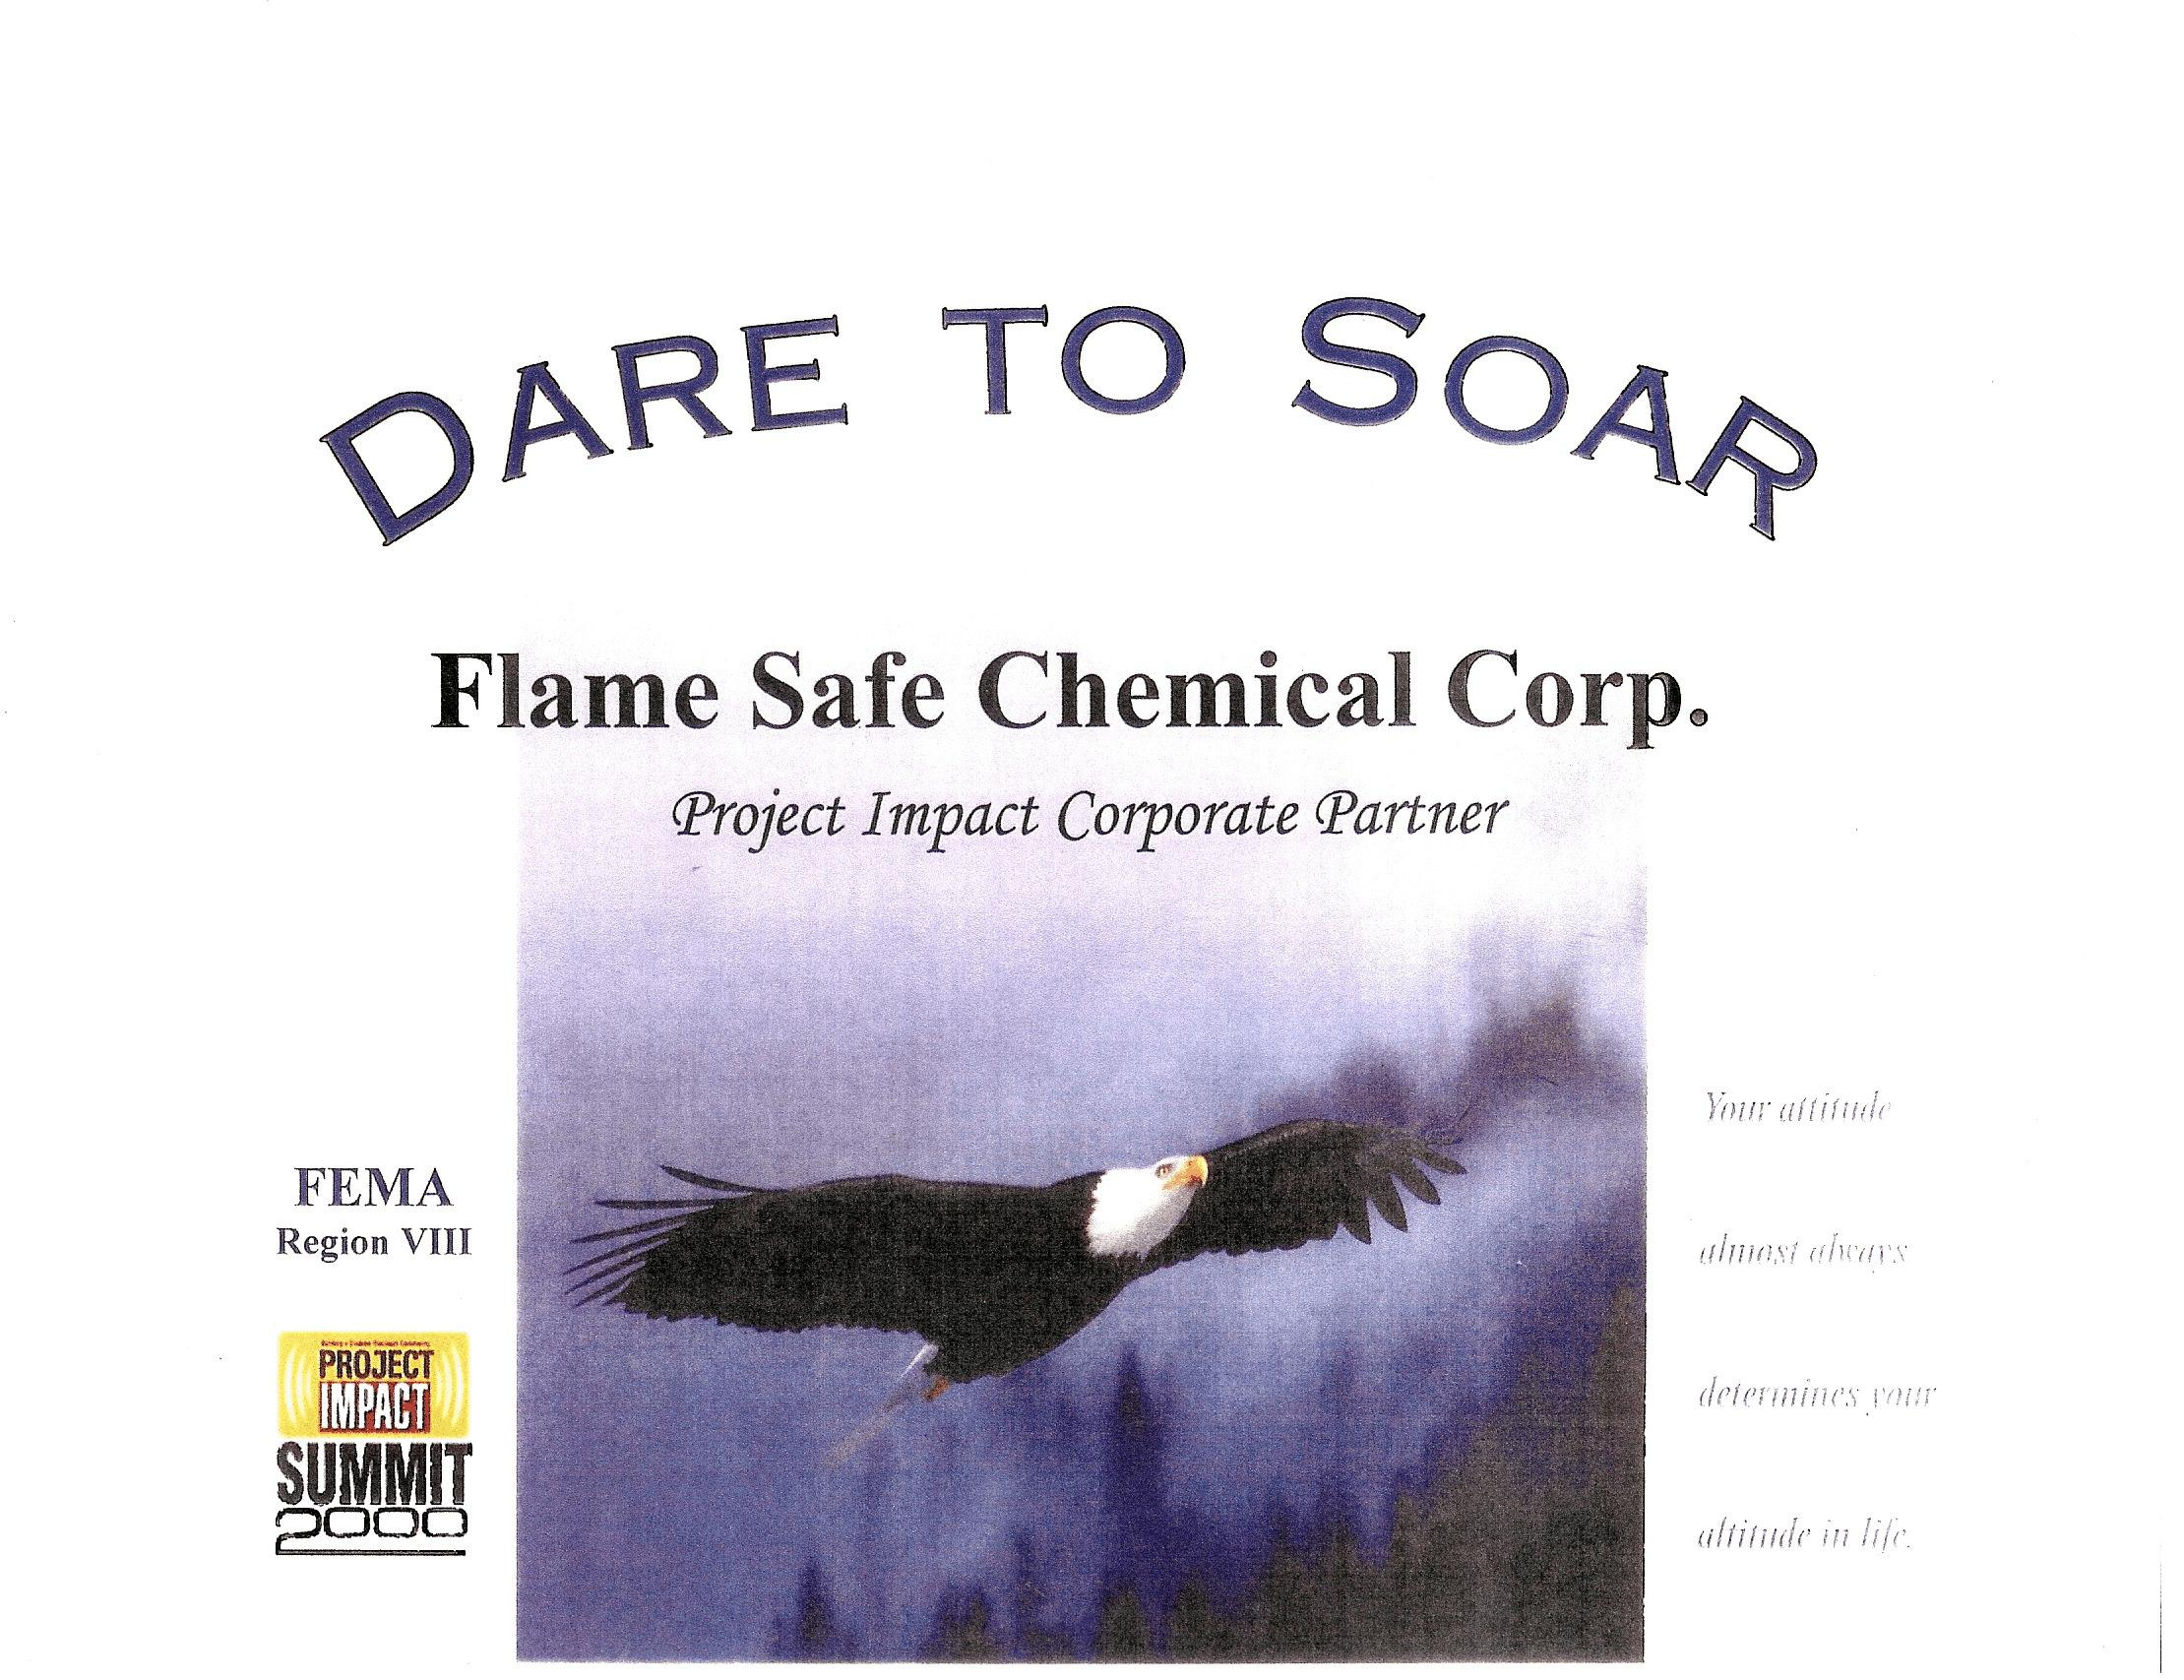 FEMA FLAME SAFE